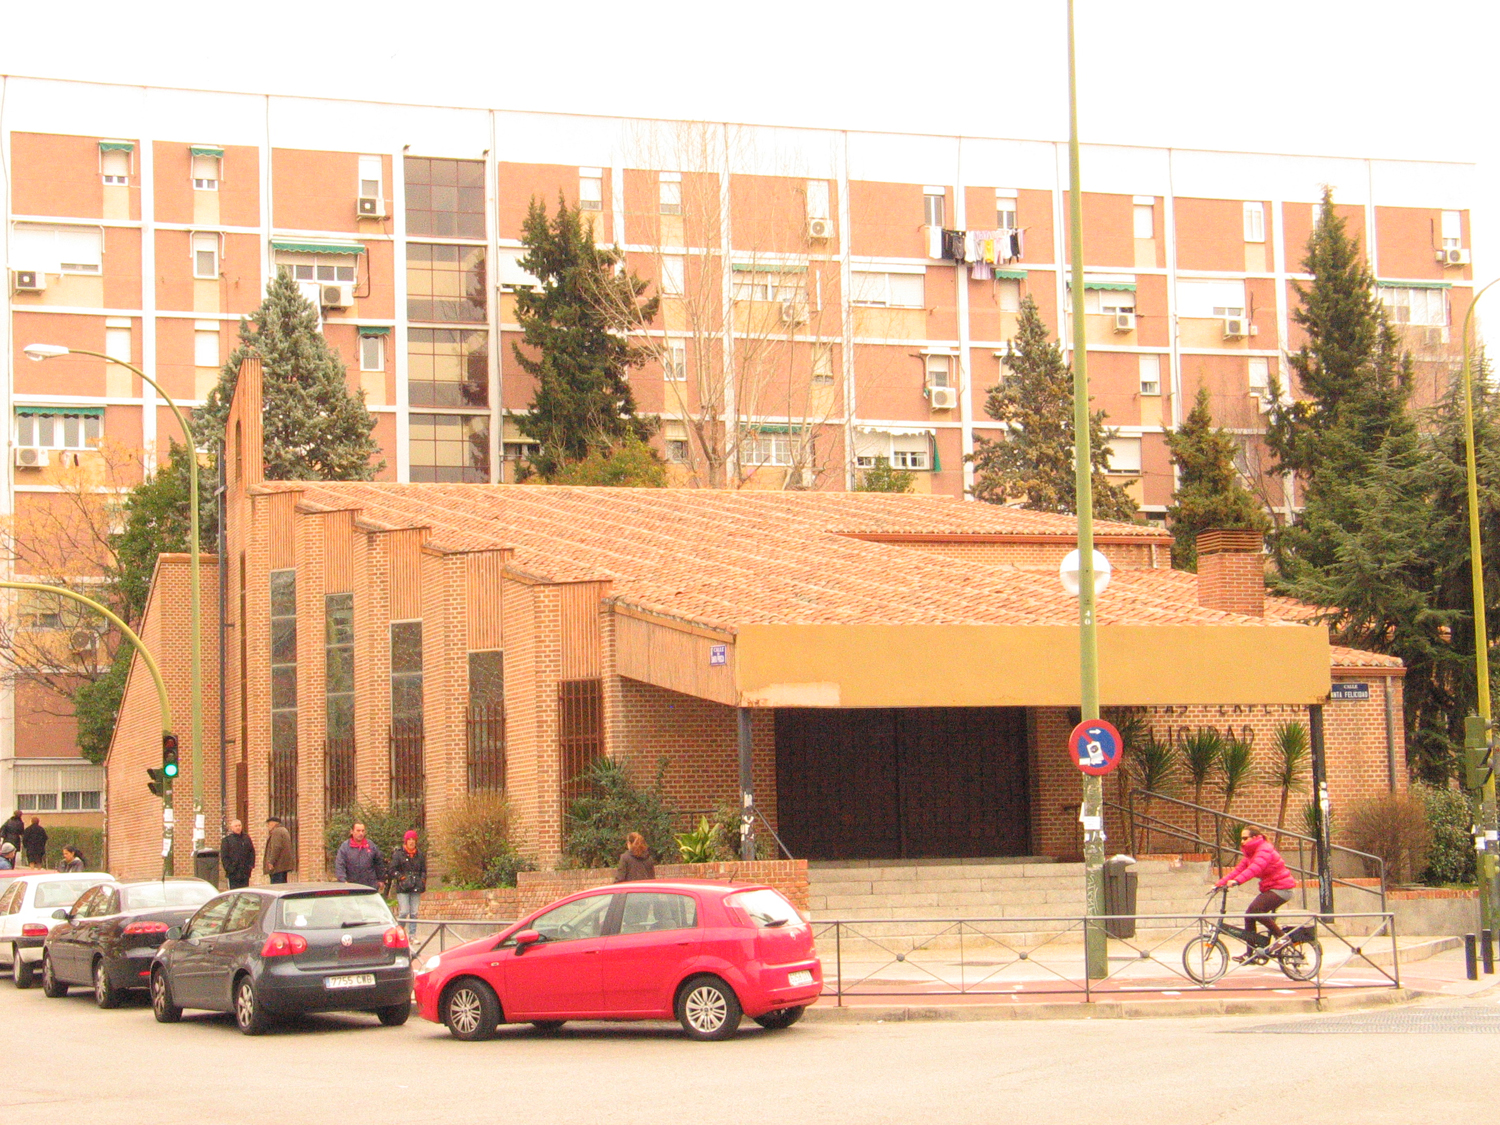 Parish of La Elipa in Madrid, where the Augustinian Recollects served from 1965 to 2016. In the         beginning, it was a neighbourhood in the city's outskirts, built to accommodate rural migrants from all         over Spain. By the 21st century it had become a neighbourhood receiving foreign immigrants.